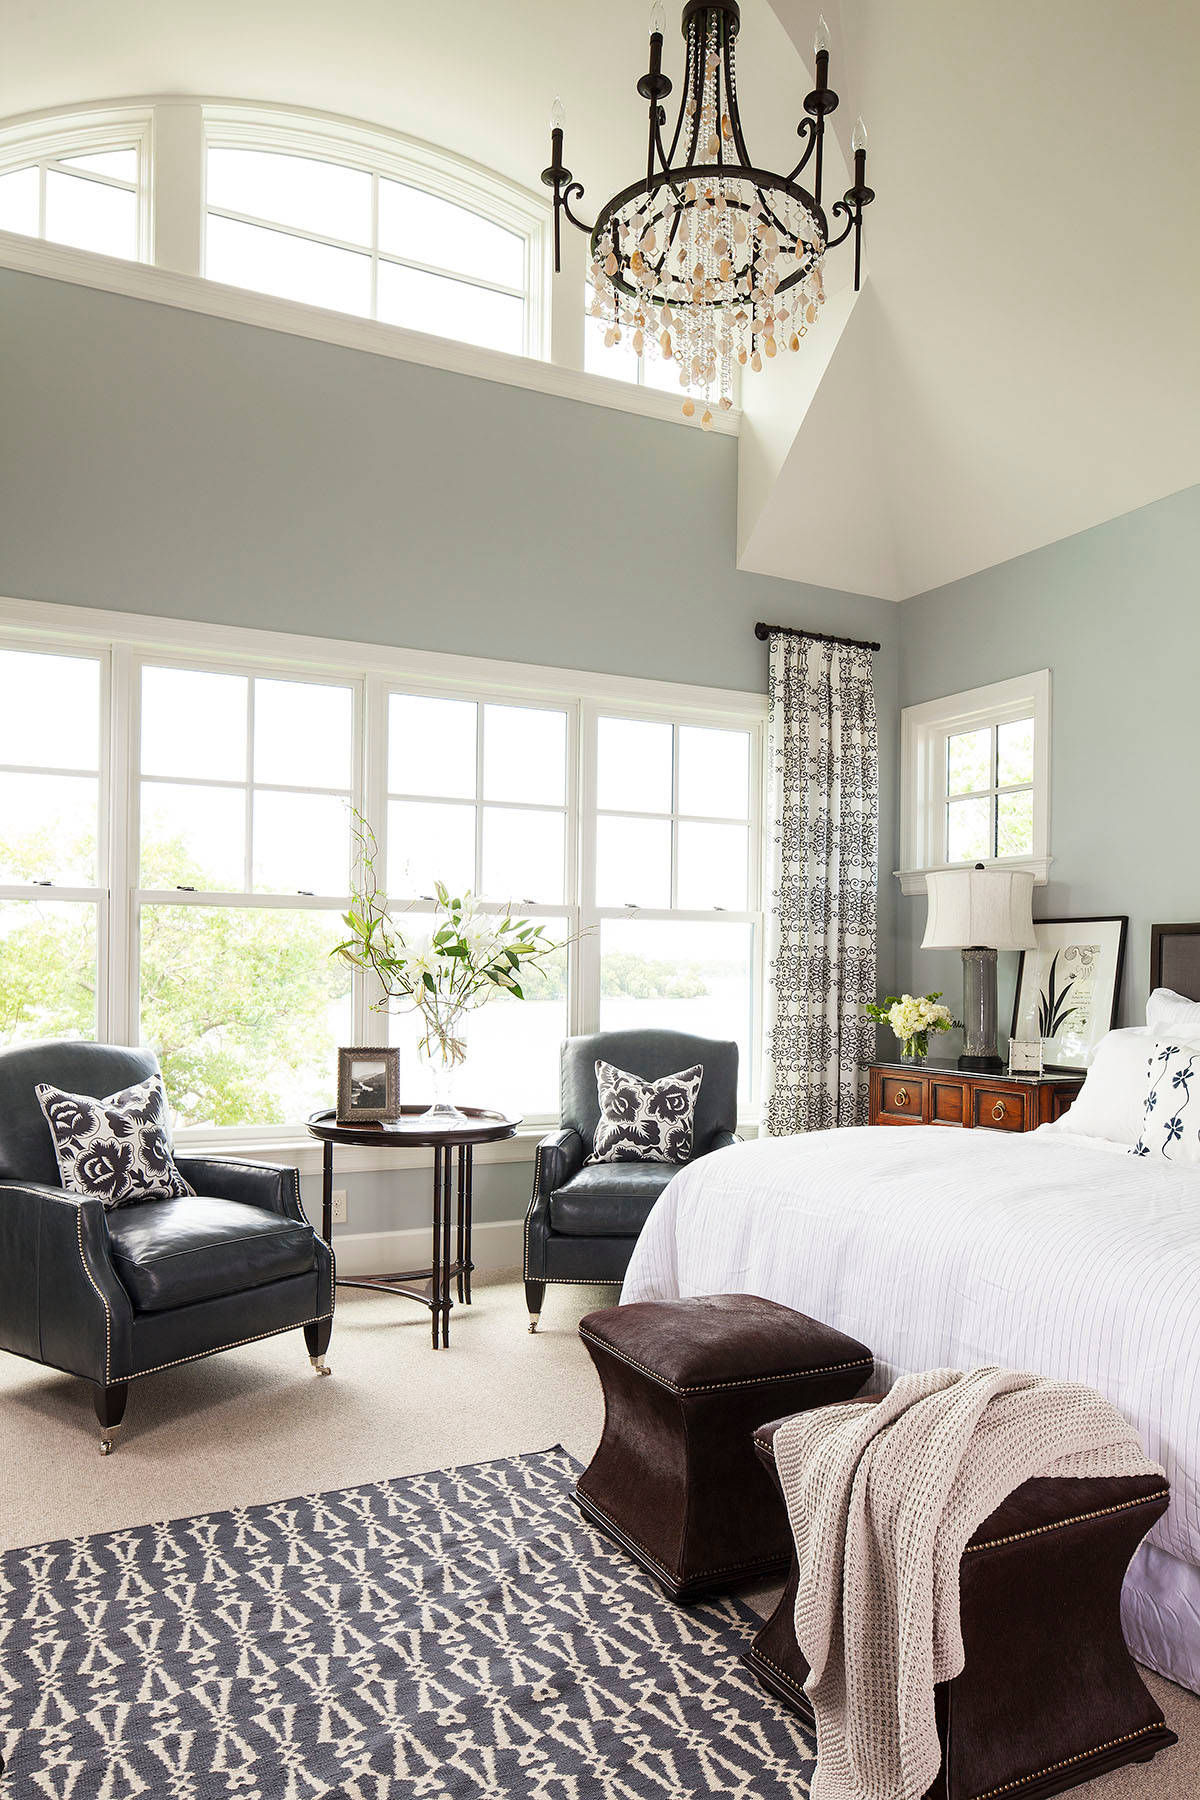 Interesting Home Using Best Interior Paint Ideas: Transitional Bedroom Plus Pattern Rug And Bed Plus Dark Footstool Also Leather Chairs With Clerestory Windows Plus Transom And Chandelier In Master Bedroom With Best Interior Paint